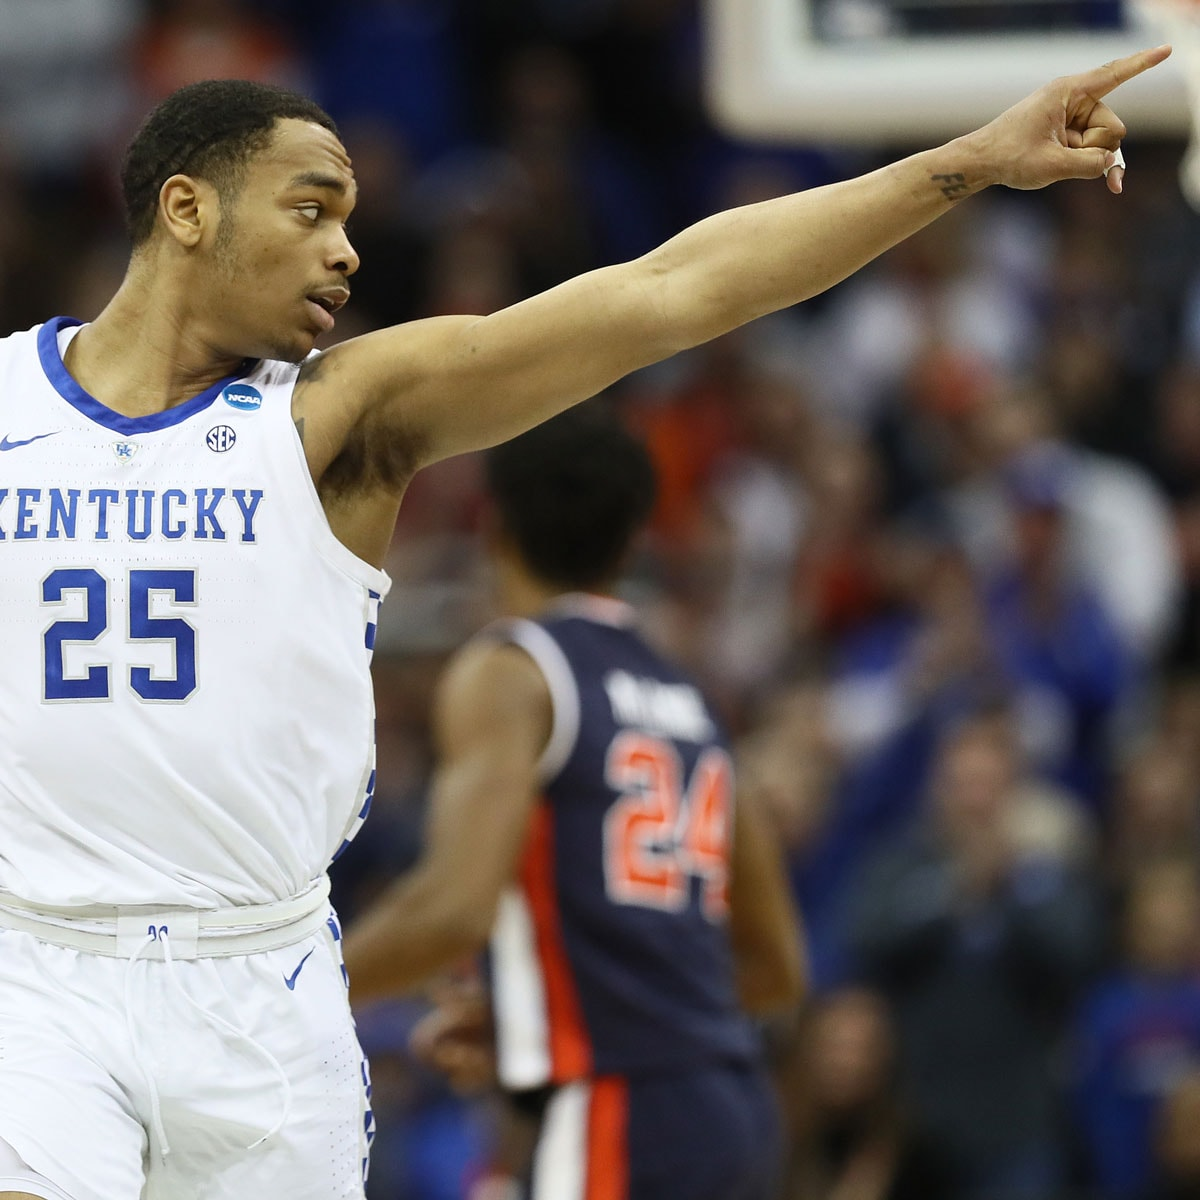 PJ Washington #25 of the Kentucky Wildcats signals against the Auburn Tigers during the 2019 NCAA Basketball Tournament Midwest Regional at Sprint Center on March 31, 2019 in Kansas City, Missouri.